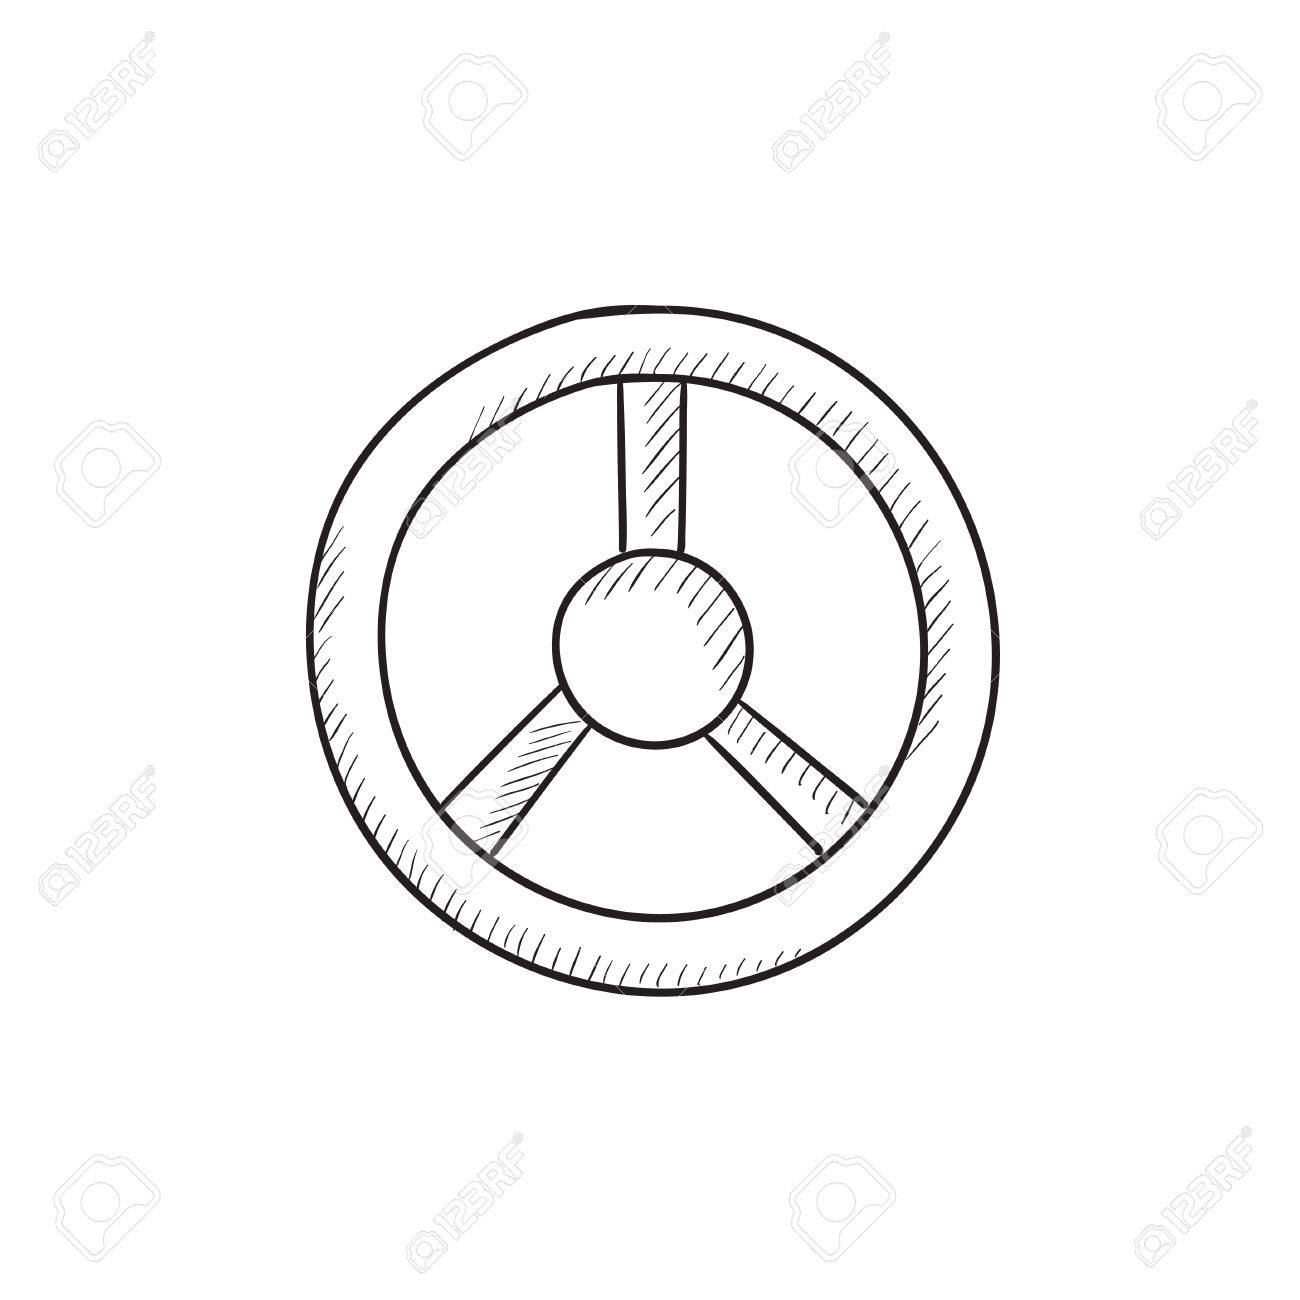 1300x1300 Steering Wheel Vector Sketch Icon Isolated On Background. Hand